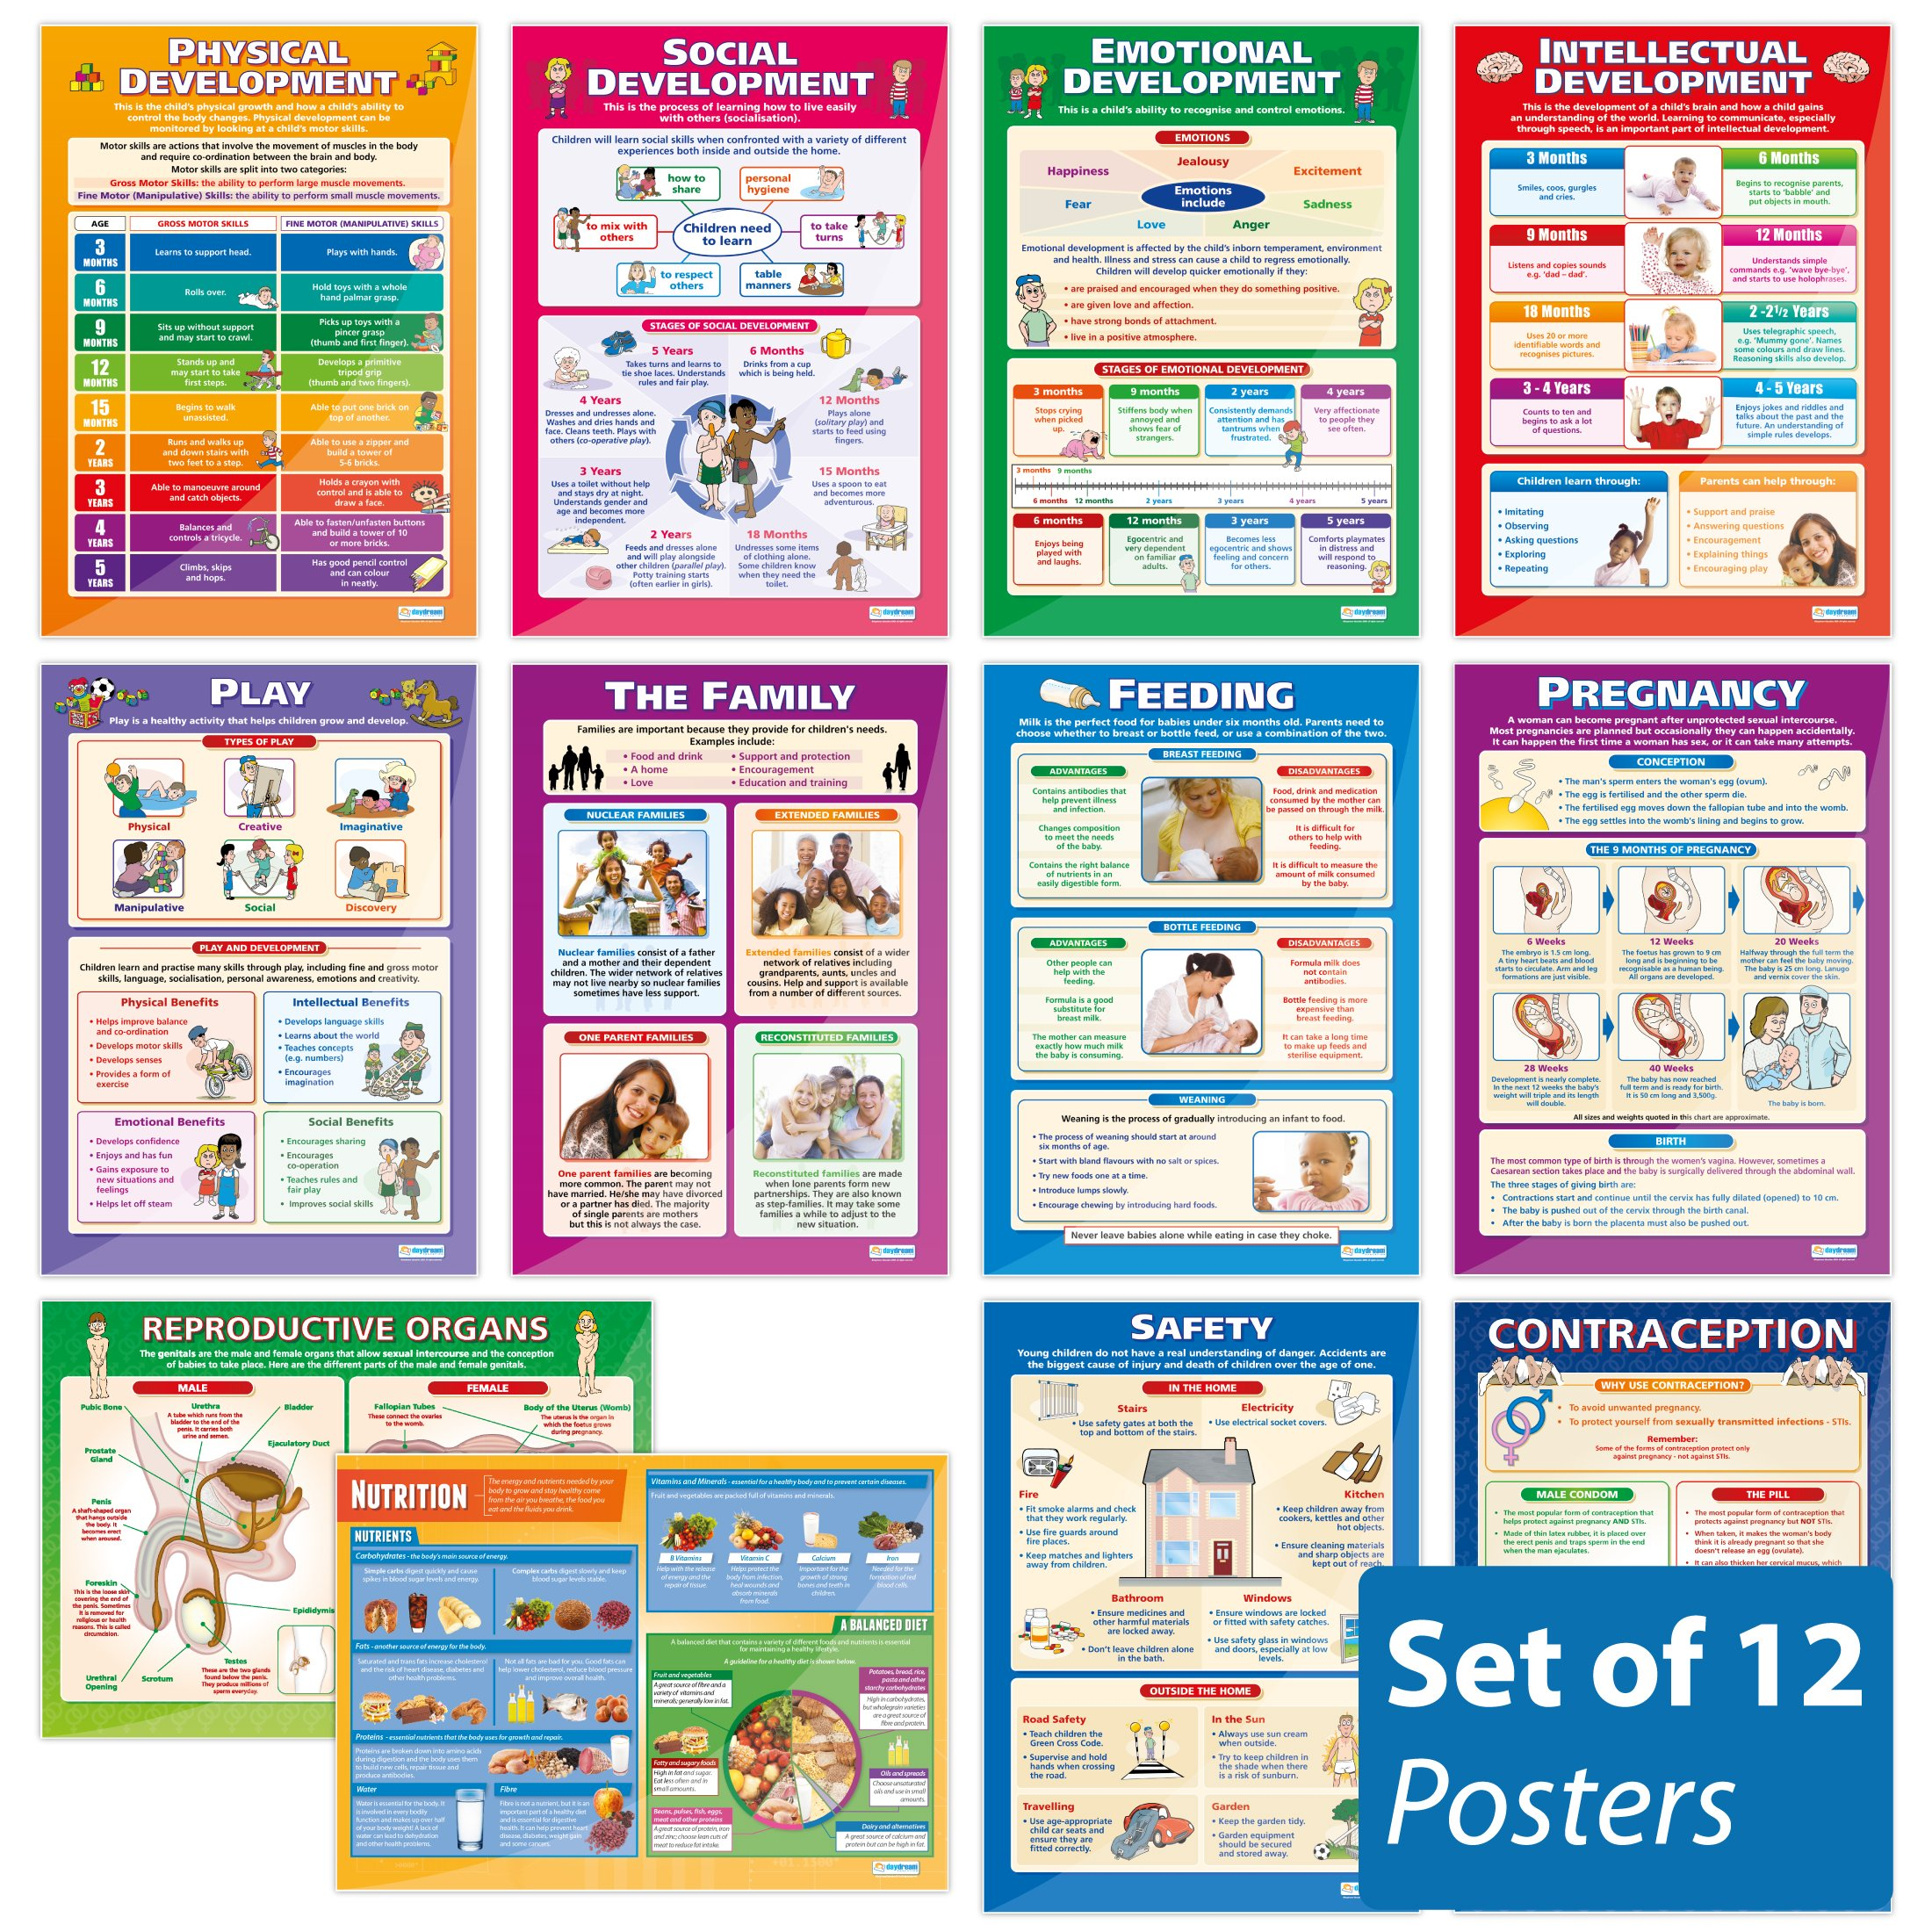 Child Development Classroom Posters - Set of 12 | Gloss Paper measuring 33'' x 23.5'', School Posters for the Classroom, Educational Wall Charts, by Daydream Education